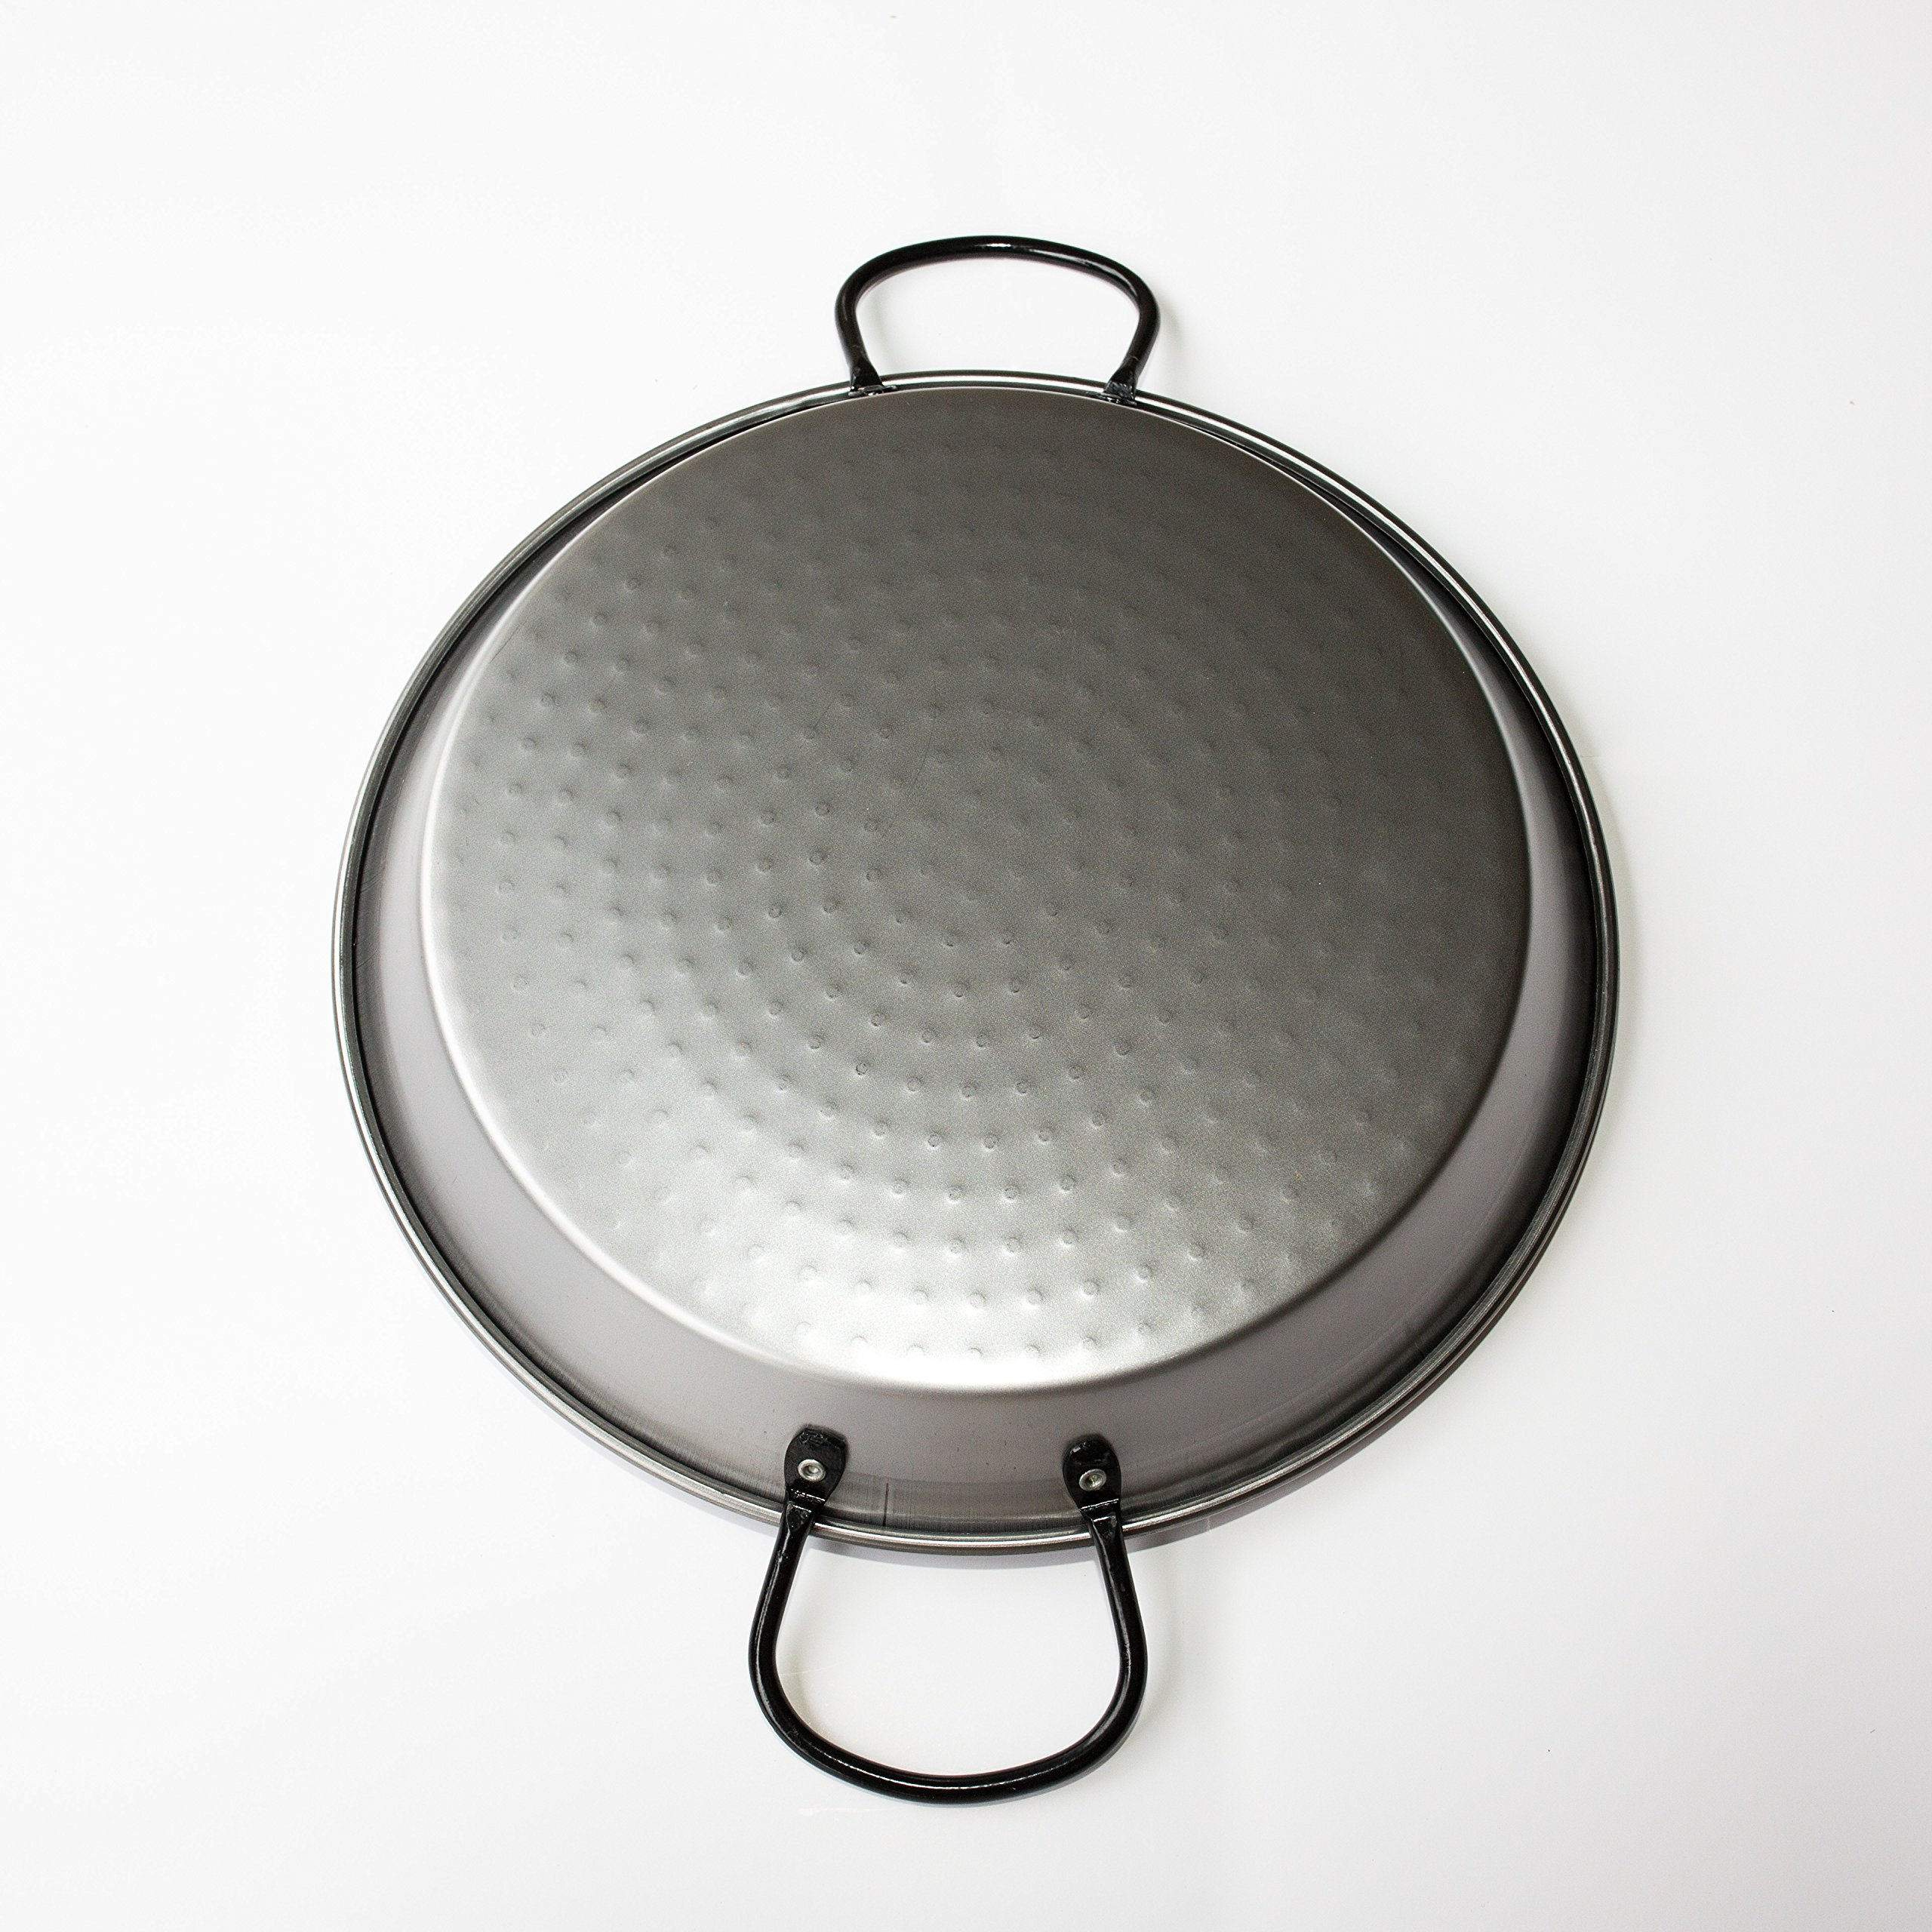 Polished Steel Valencian paella pan 12 Inch (30cm) 4 Servings by Castevia Imports (Image #2)